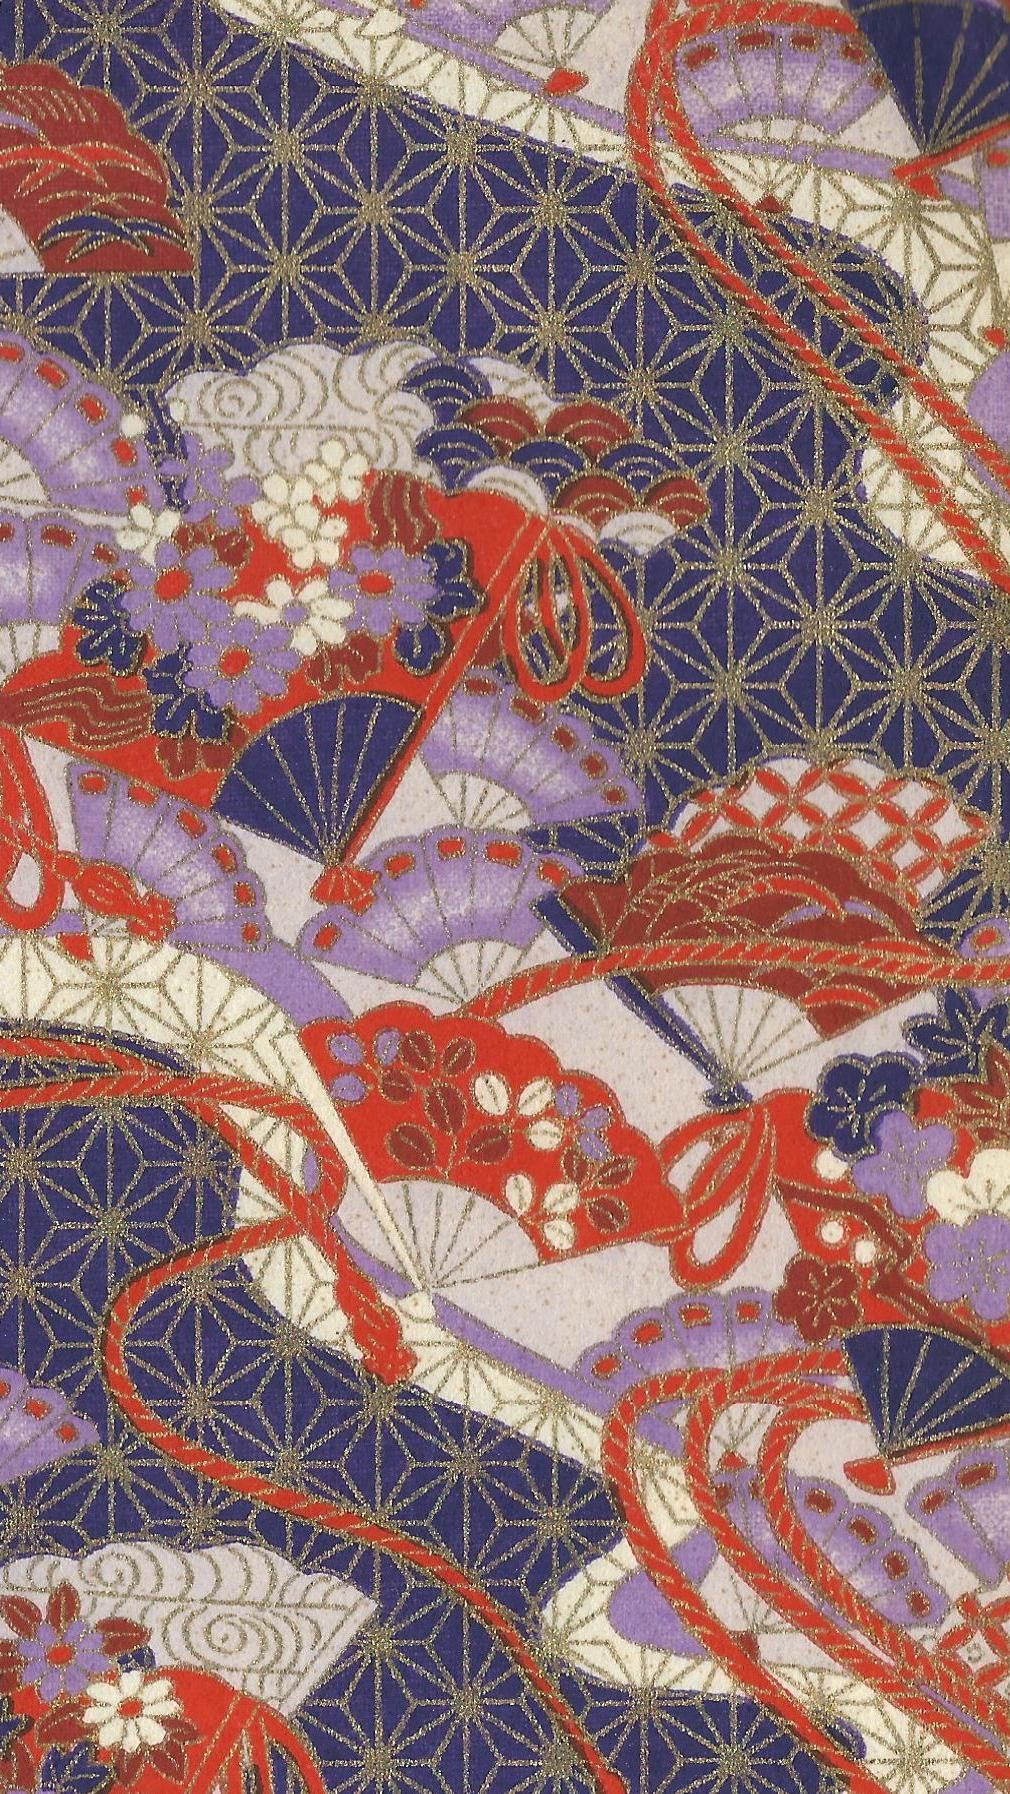 Pin by lindac on 和魁 Oriental design, Iphone wallpaper